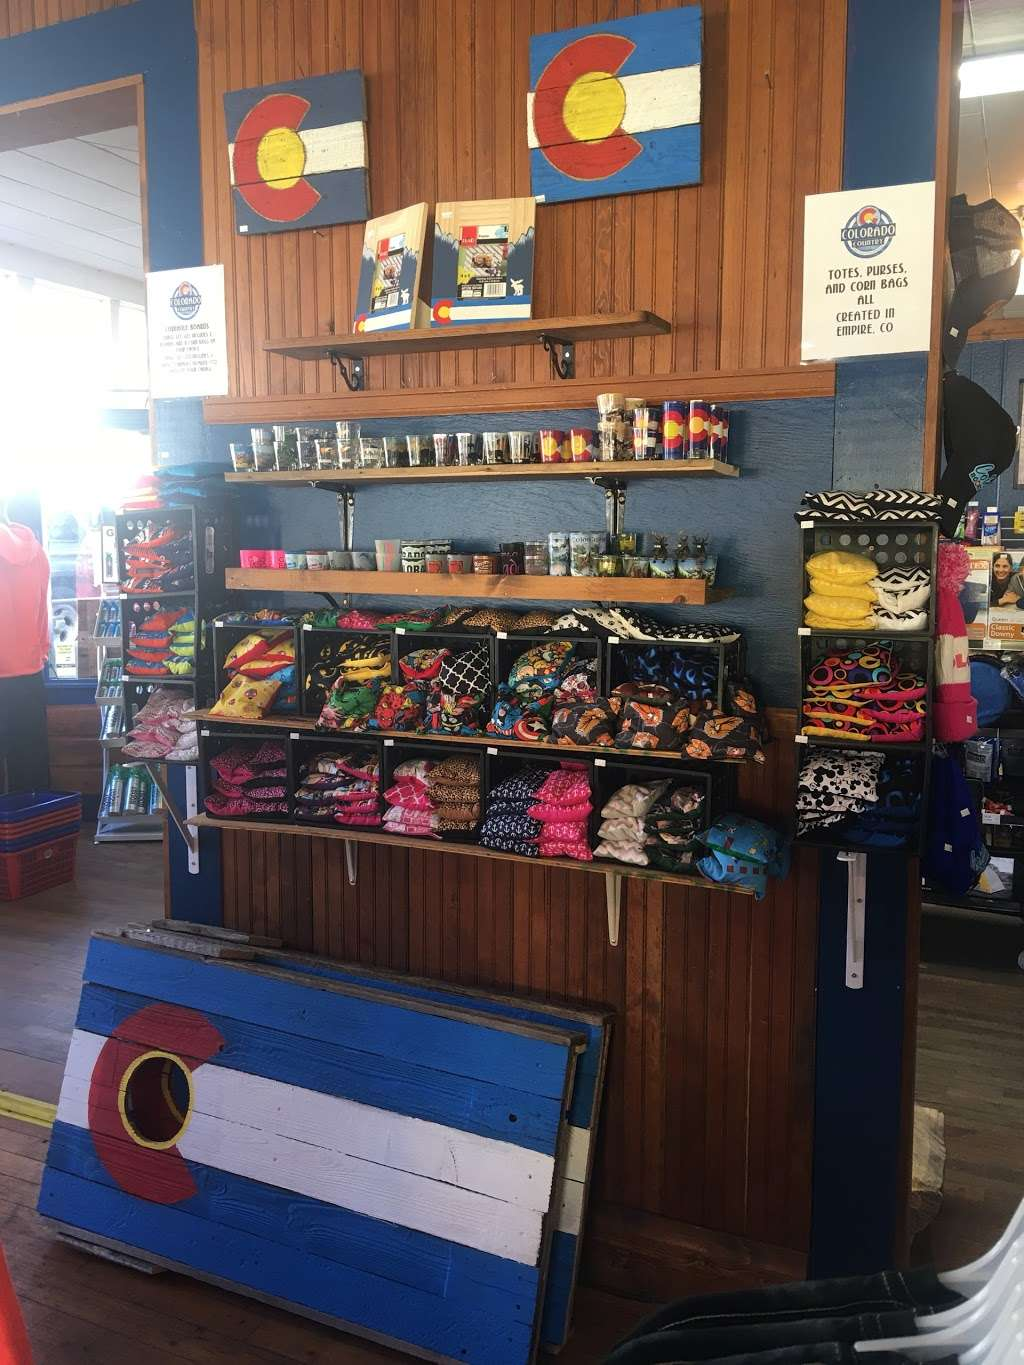 Colorado Country General Store & Souvenirs - convenience store  | Photo 6 of 9 | Address: 6 Park Ave, Empire, CO 80438, USA | Phone: (303) 569-2546